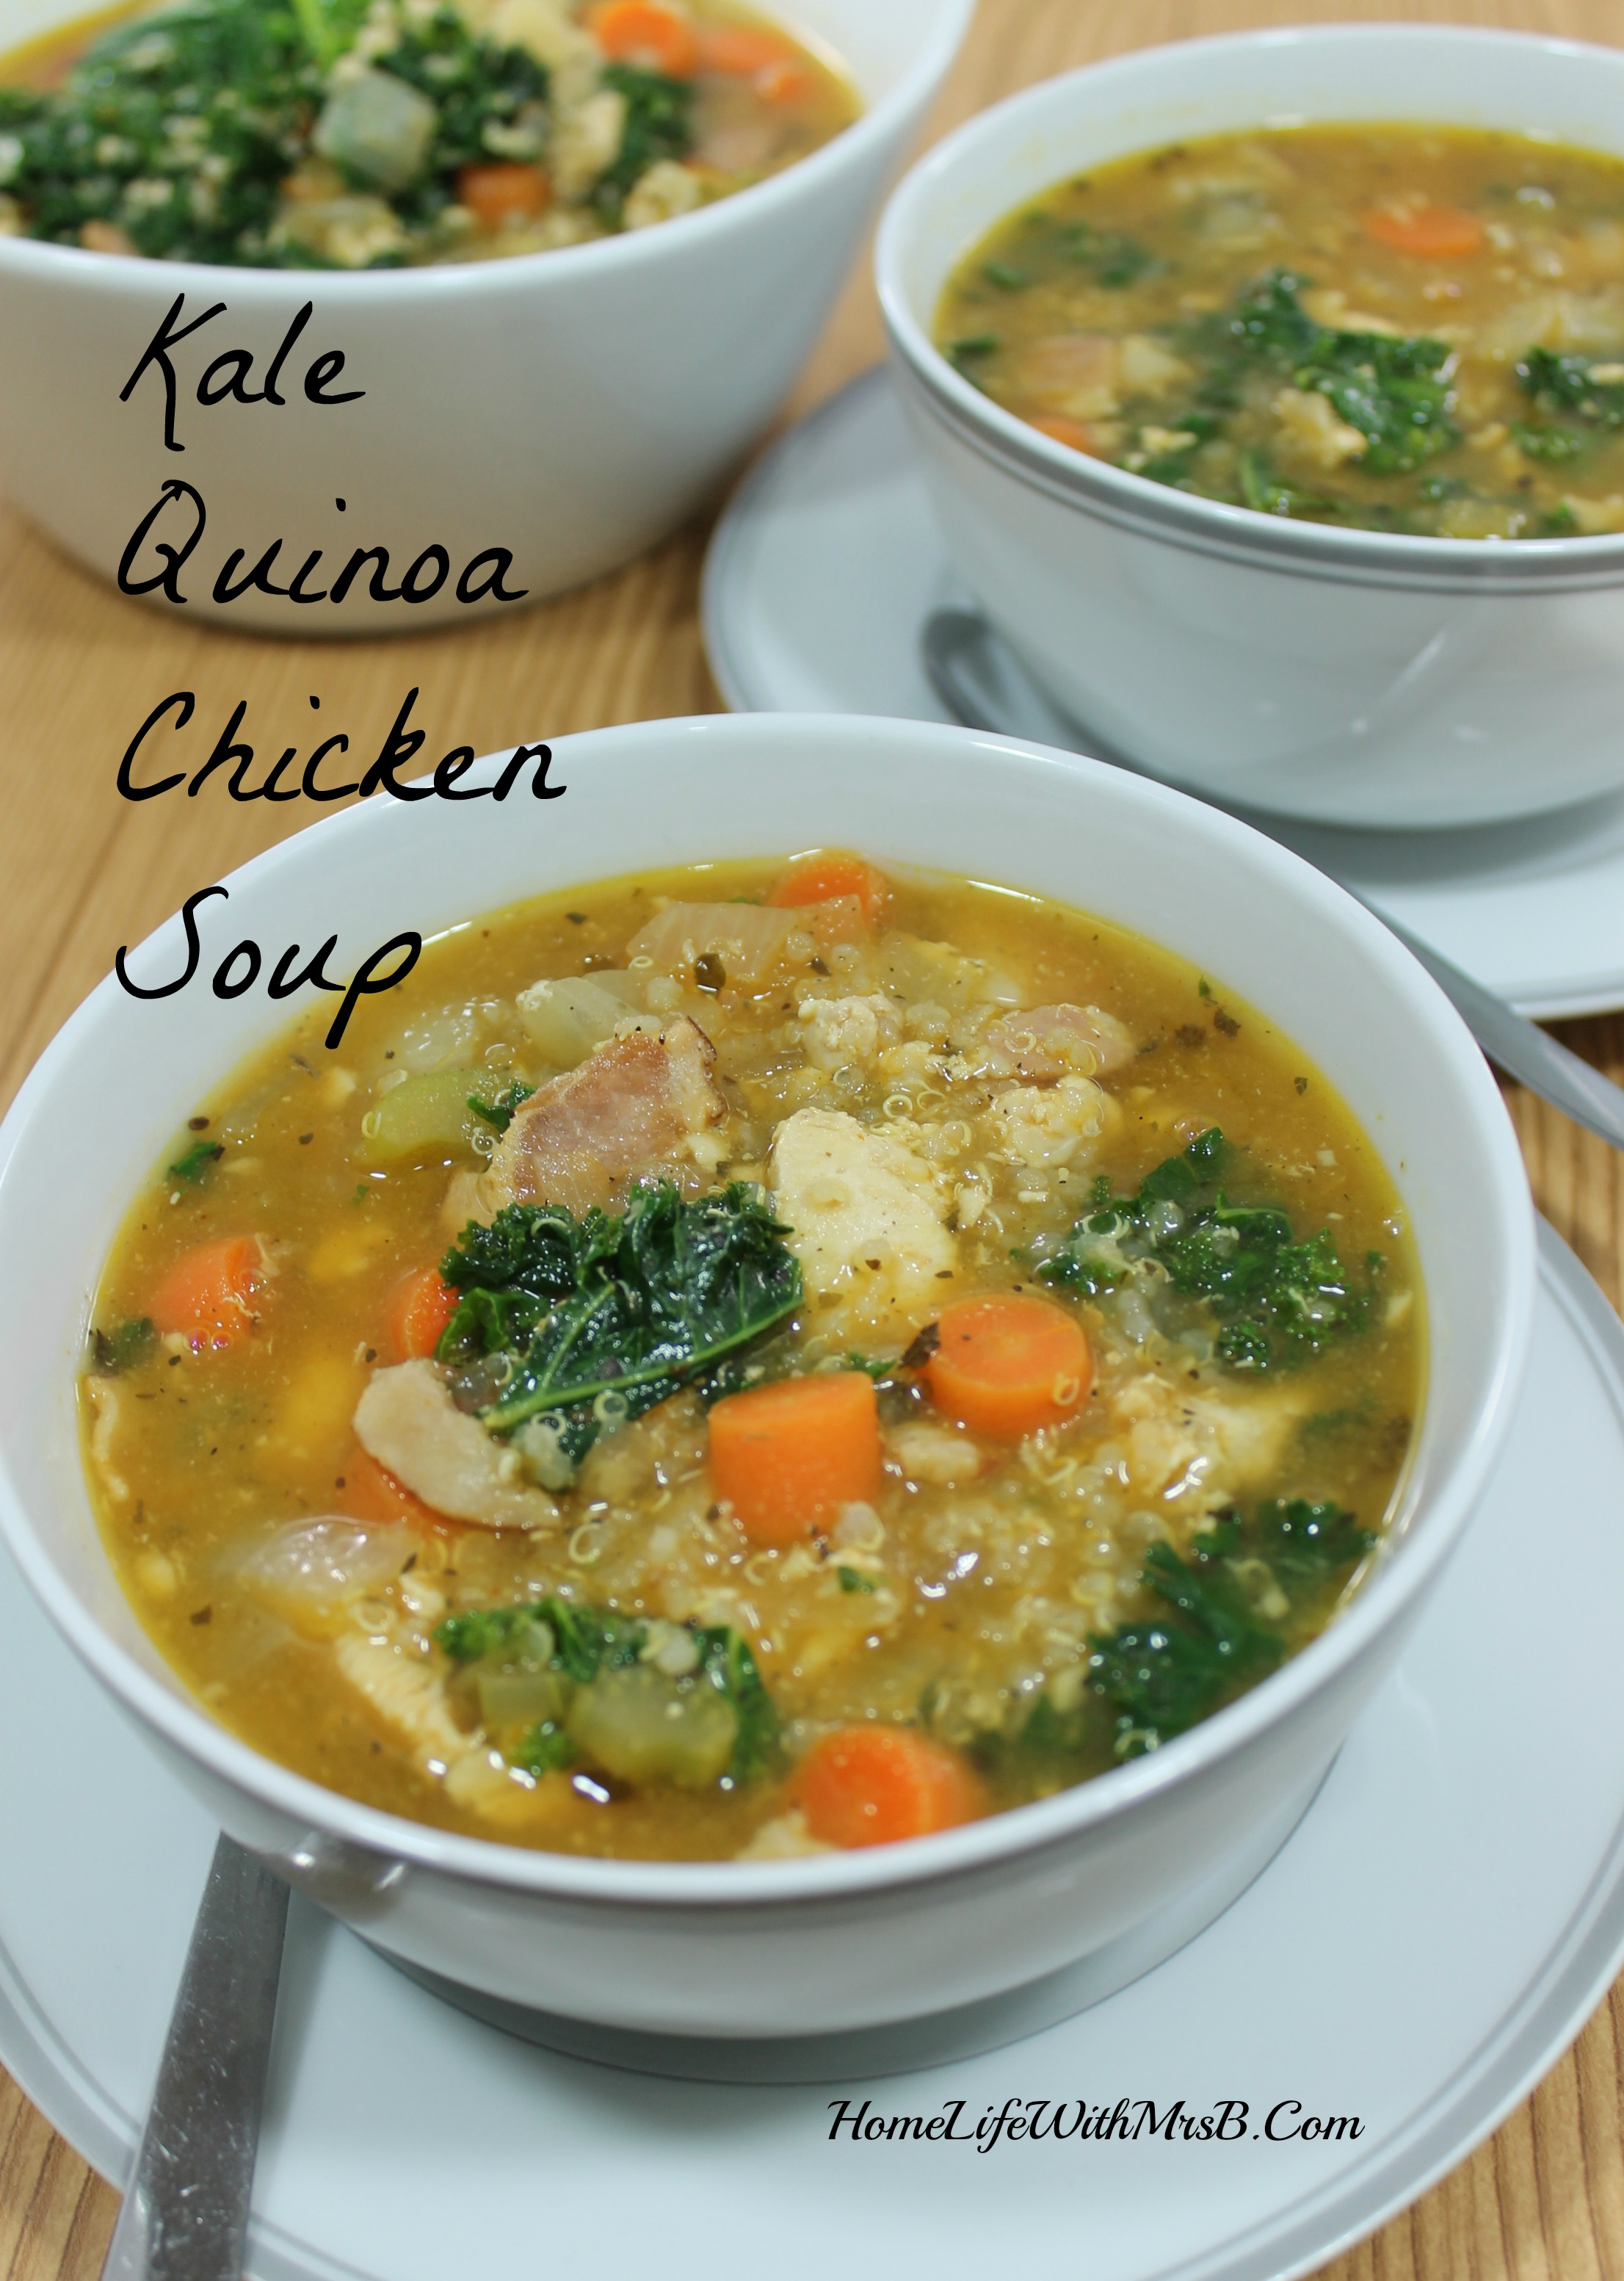 Kale Quinoa Chicken Soup